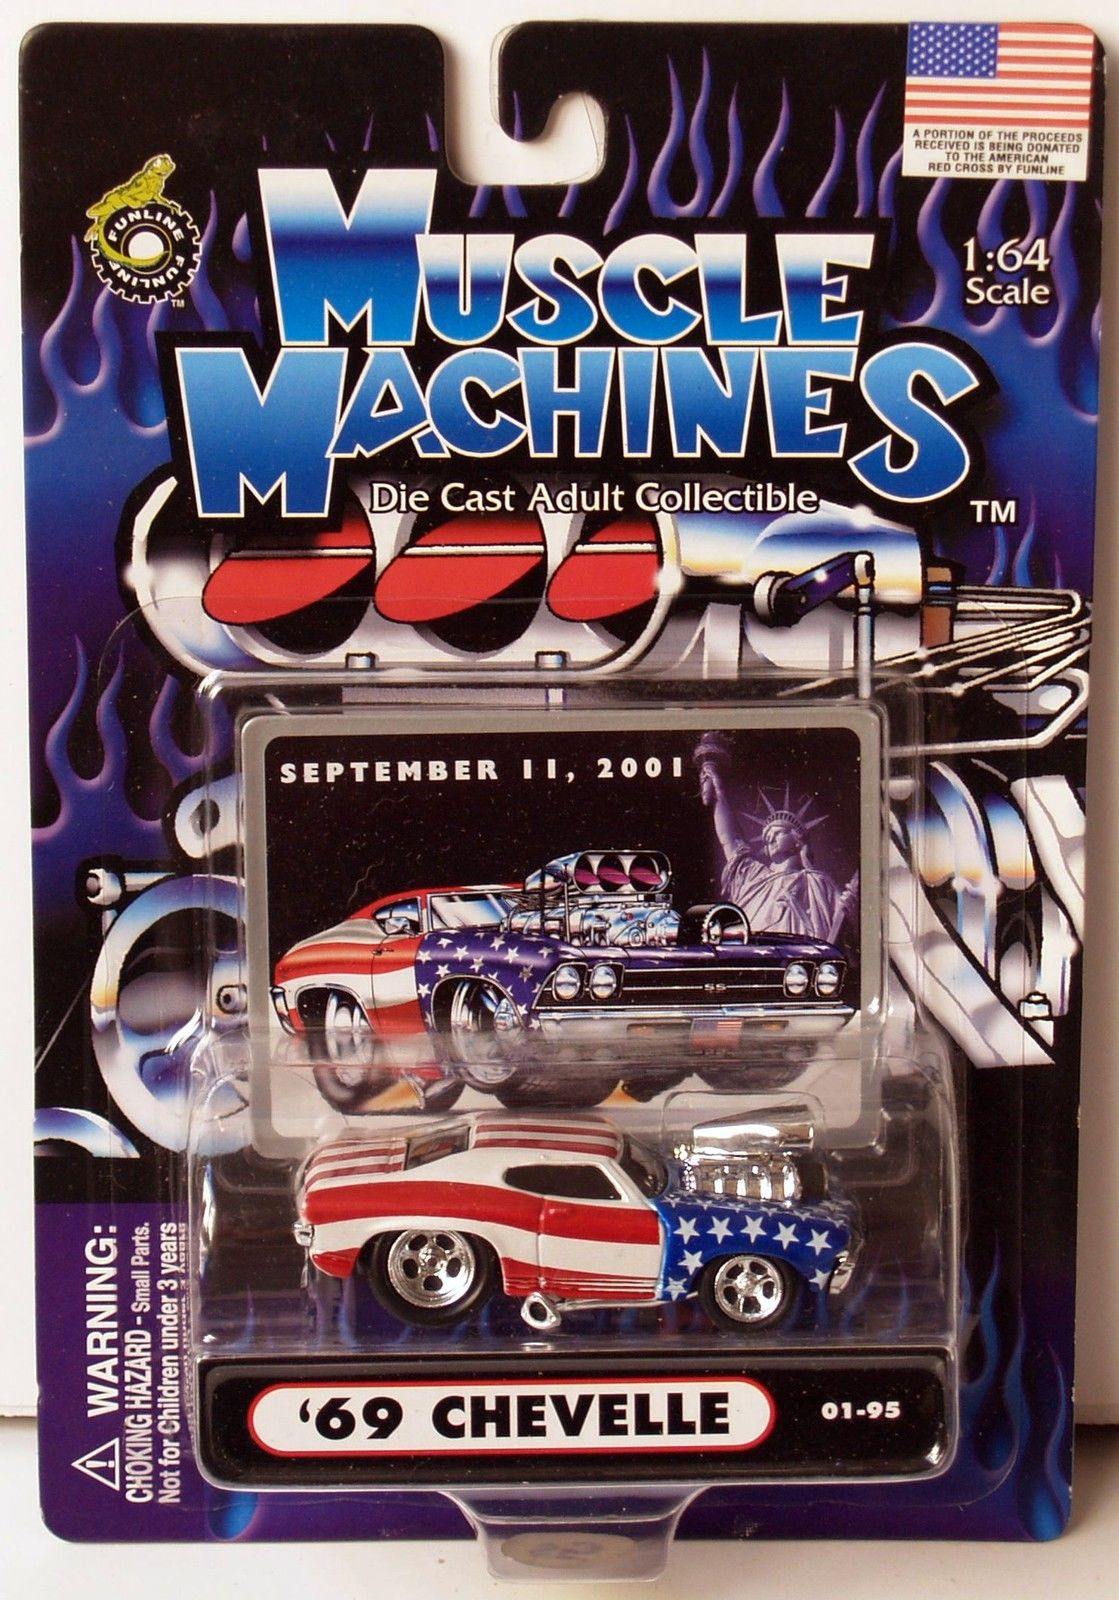 MUSCLE MACHINES SCALE 1:64 SEPTEMBER 11 2001 - '69 CHEVELLE